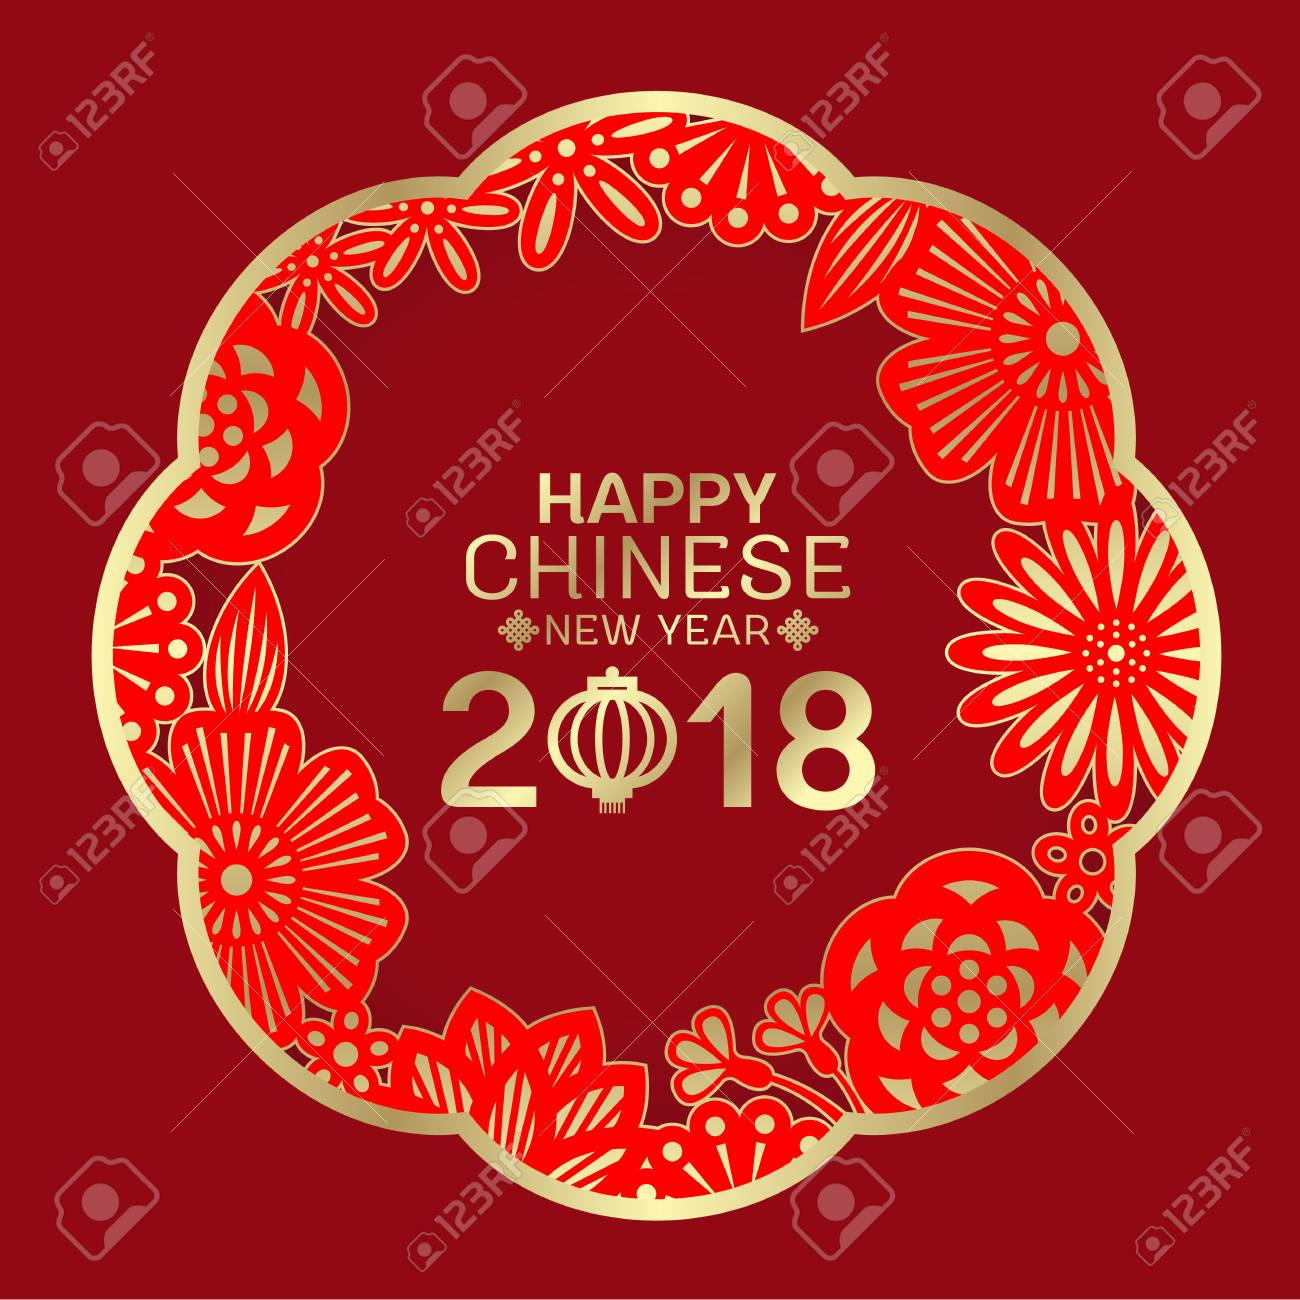 Happy Chinese new year 2018 and lantern text in abstract red and gold paper cut flower art in circle frame on red background vector illustration design - 88774398